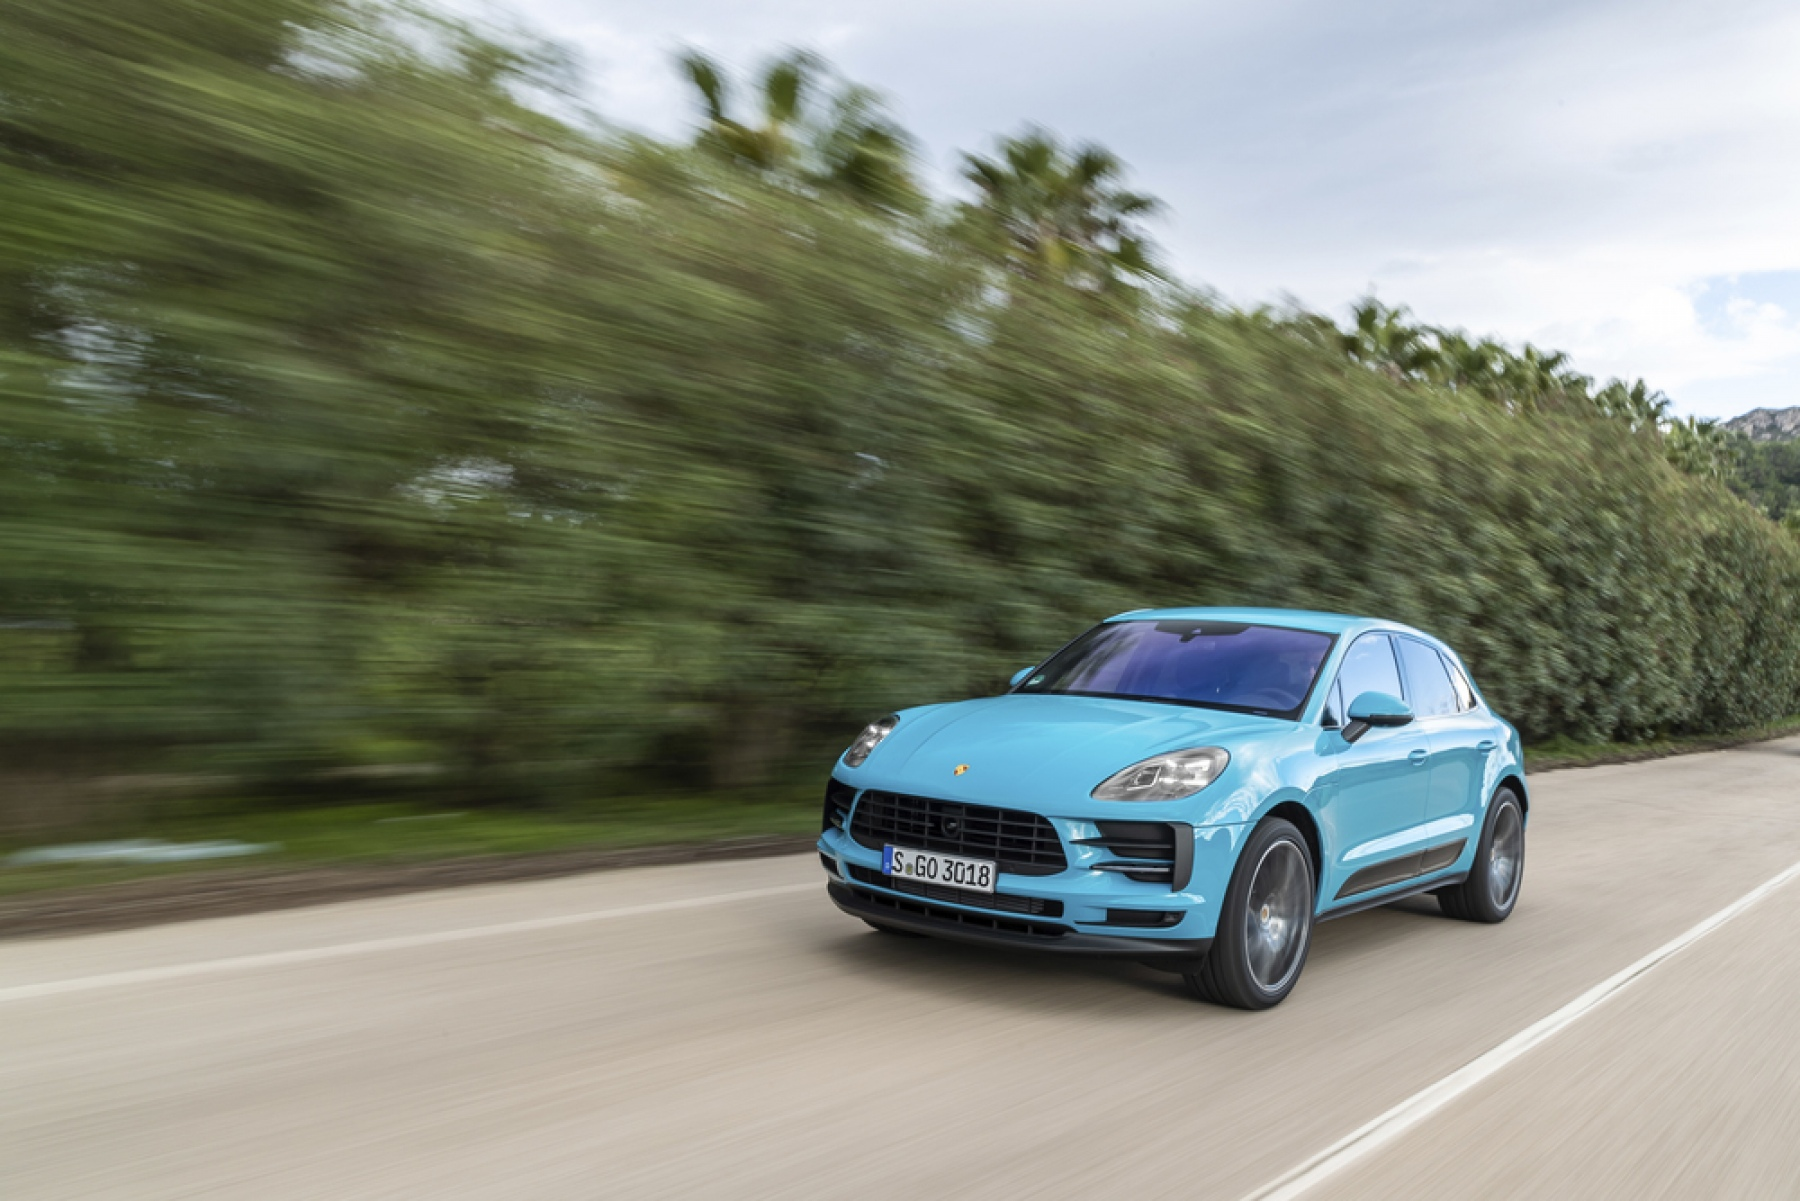 Macan Miami Blue The New Macan